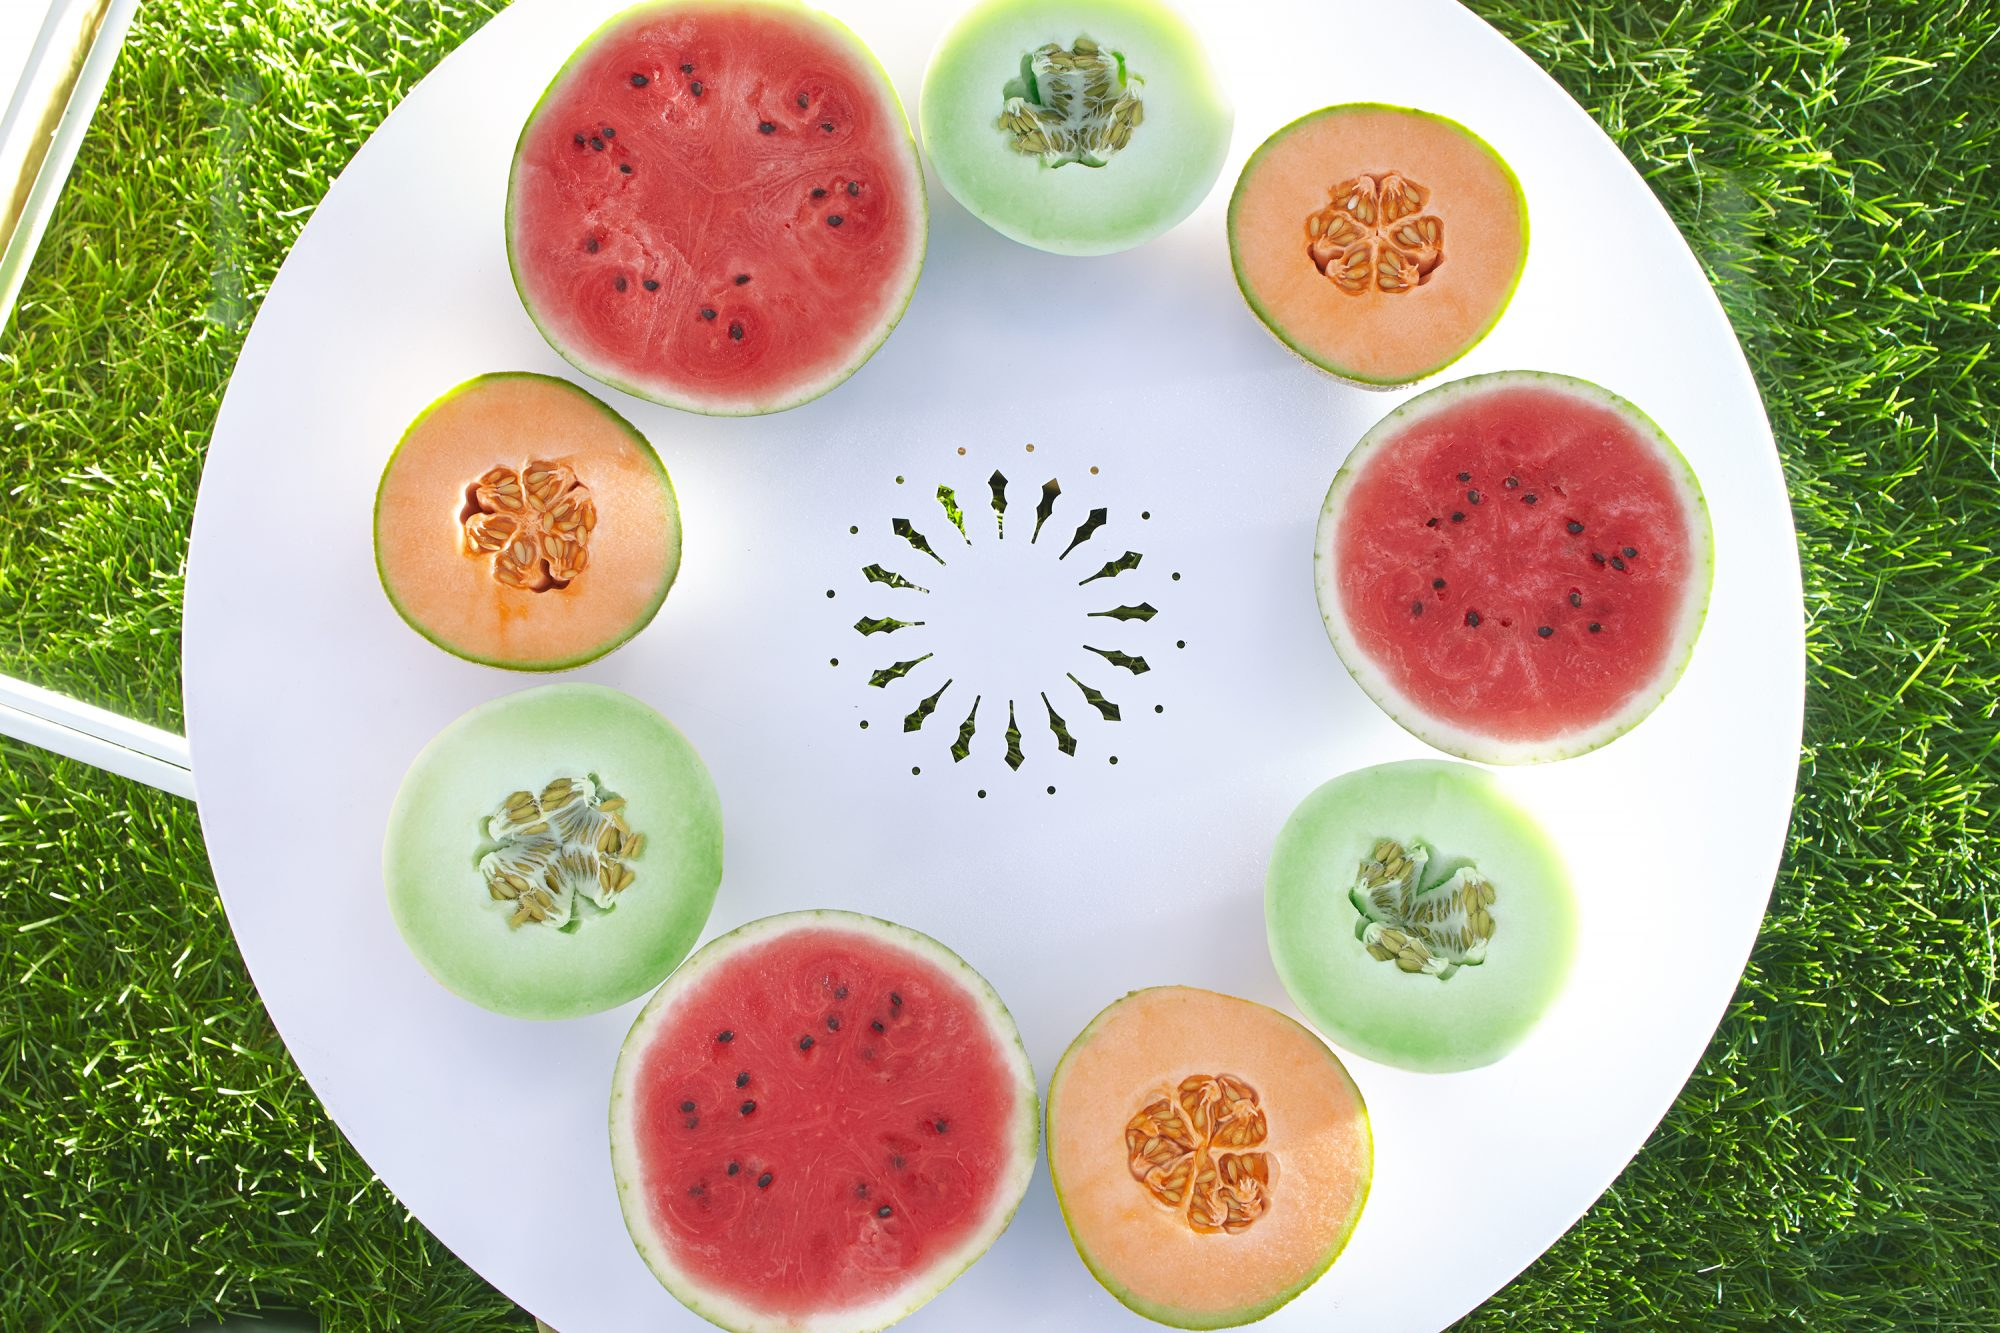 watermelon, cantaloupe, and honeydew melons